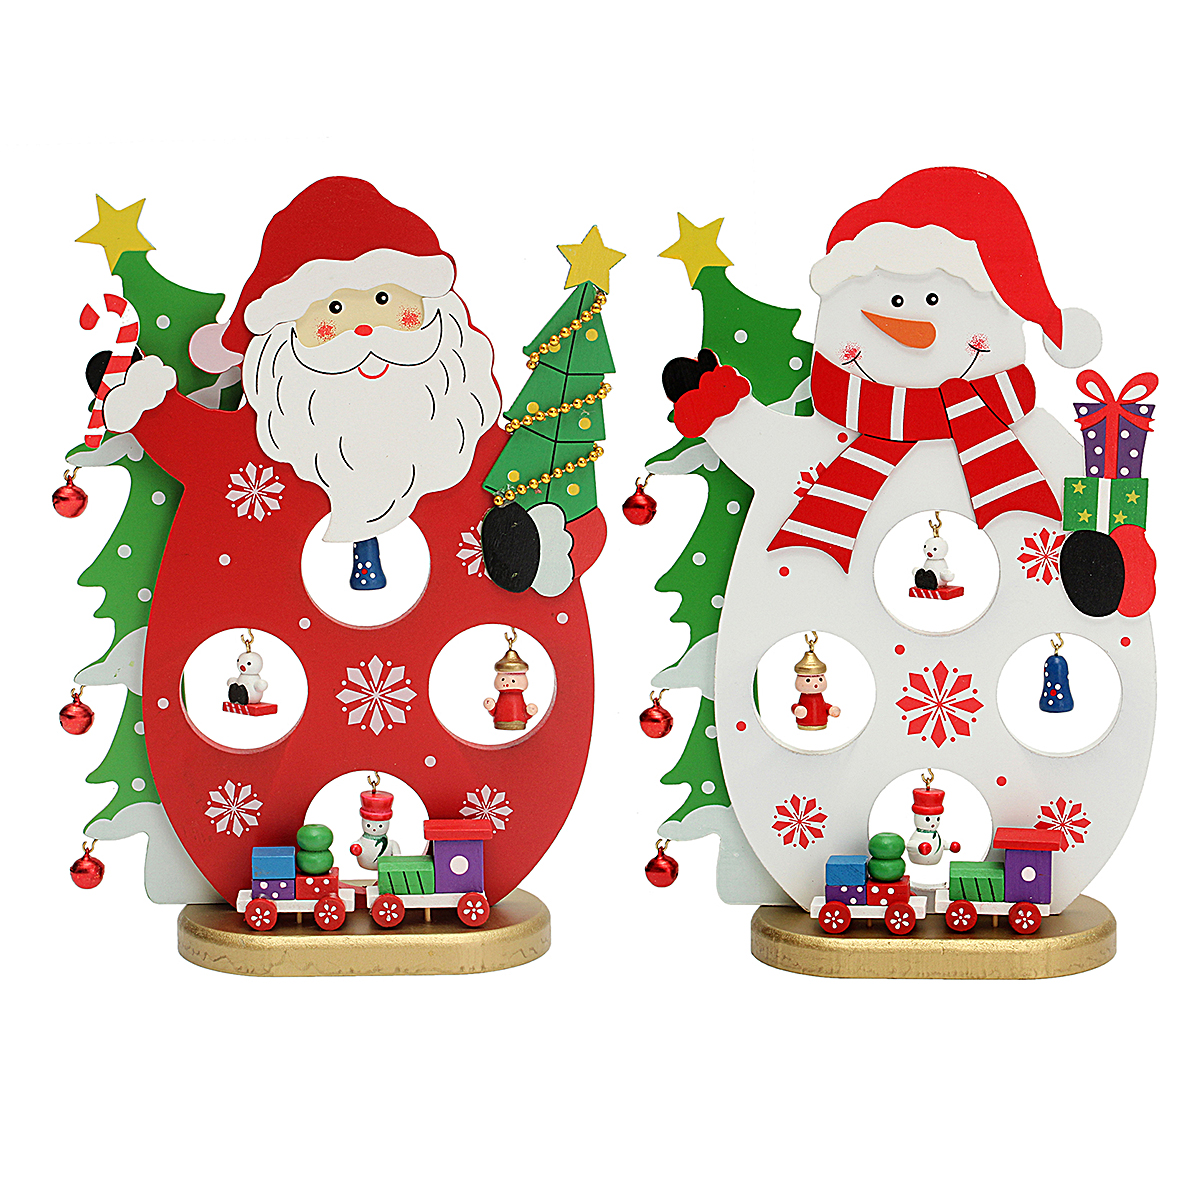 3D Wooden Christmas Santa Claus Snowman Assembling Crafts